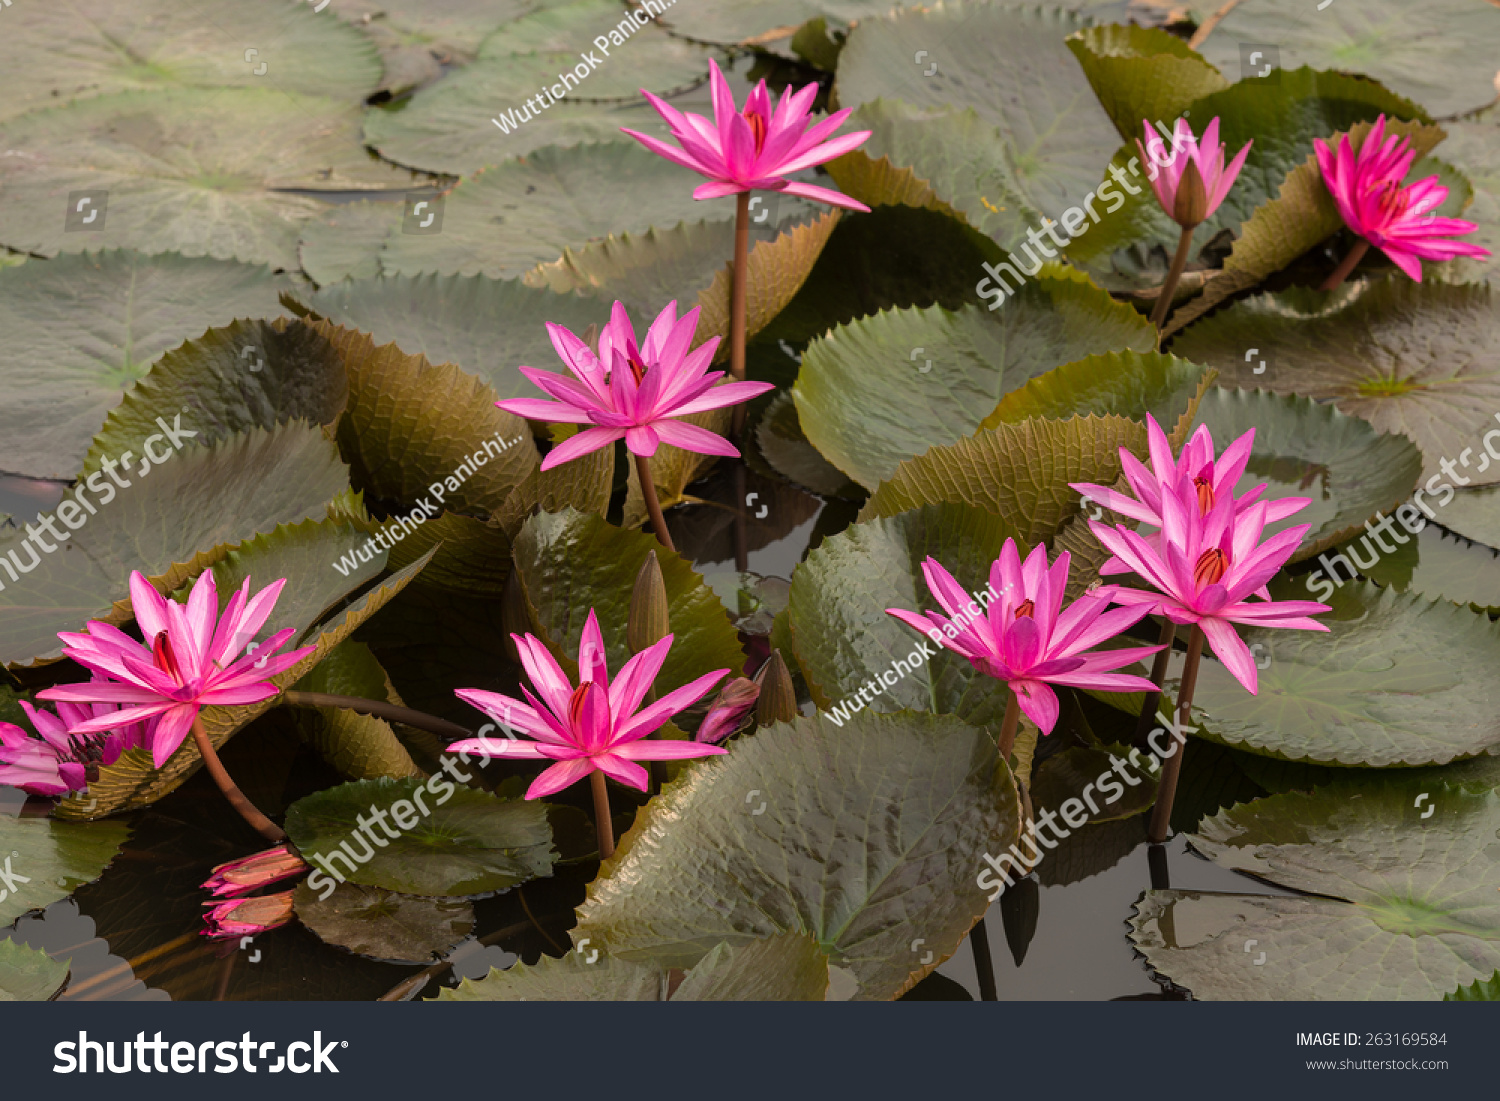 Close up pink color fresh lotus blossom or water lily flower id 263169584 izmirmasajfo